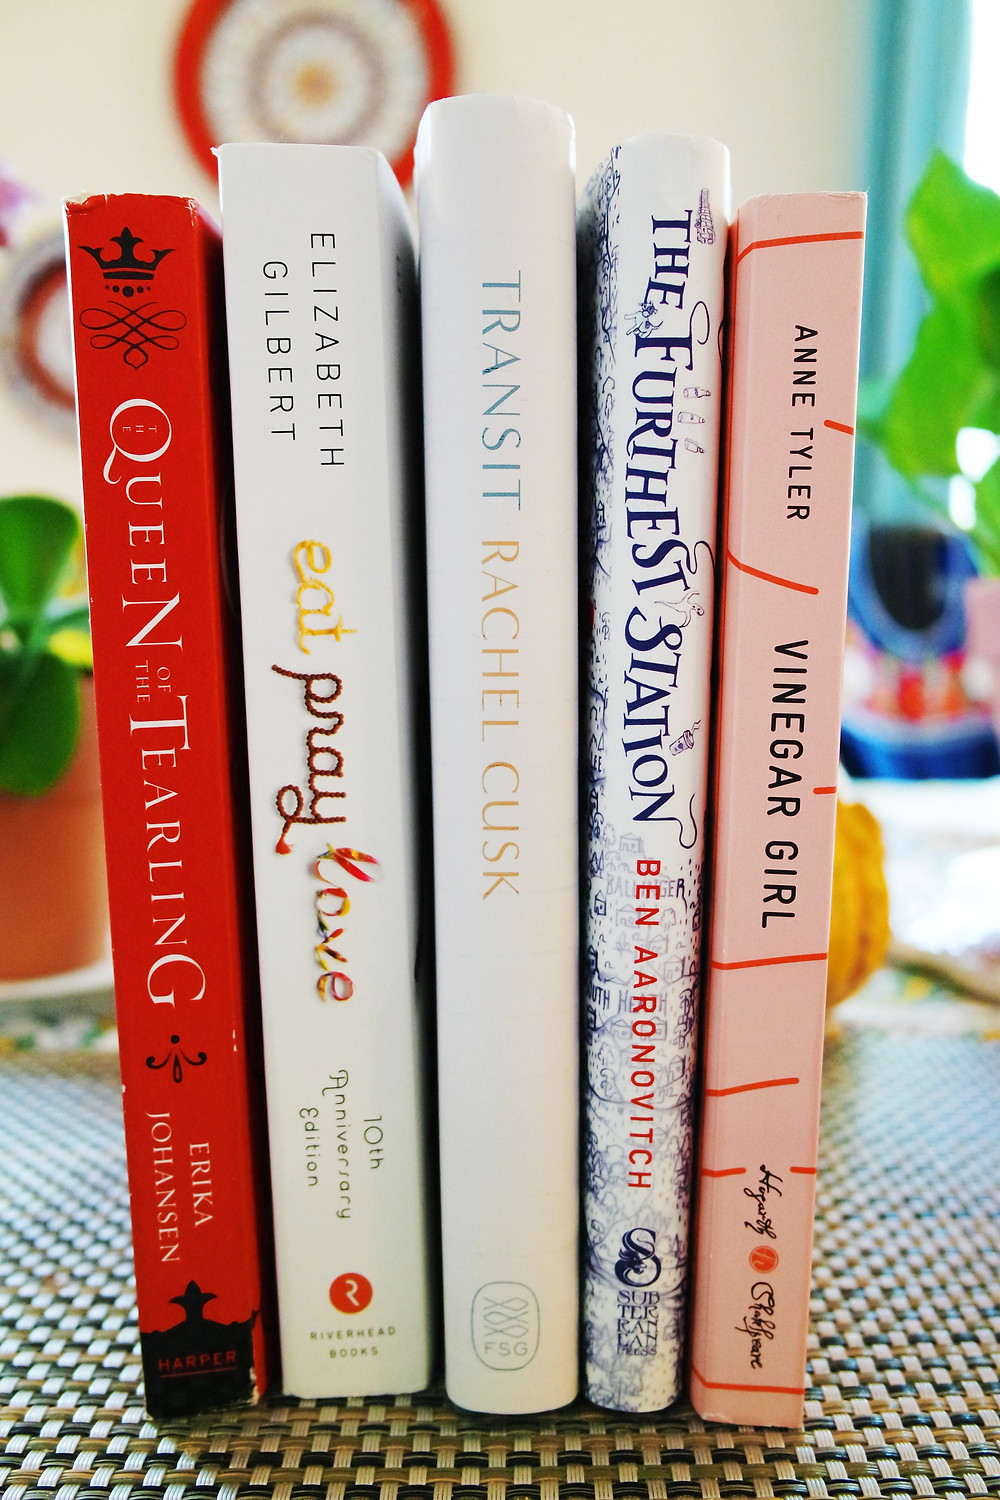 Five books standing on a table - Queen of the Tearling, Eat Pray Love, Transit, The Furthest Station, and Vinegar Girl,